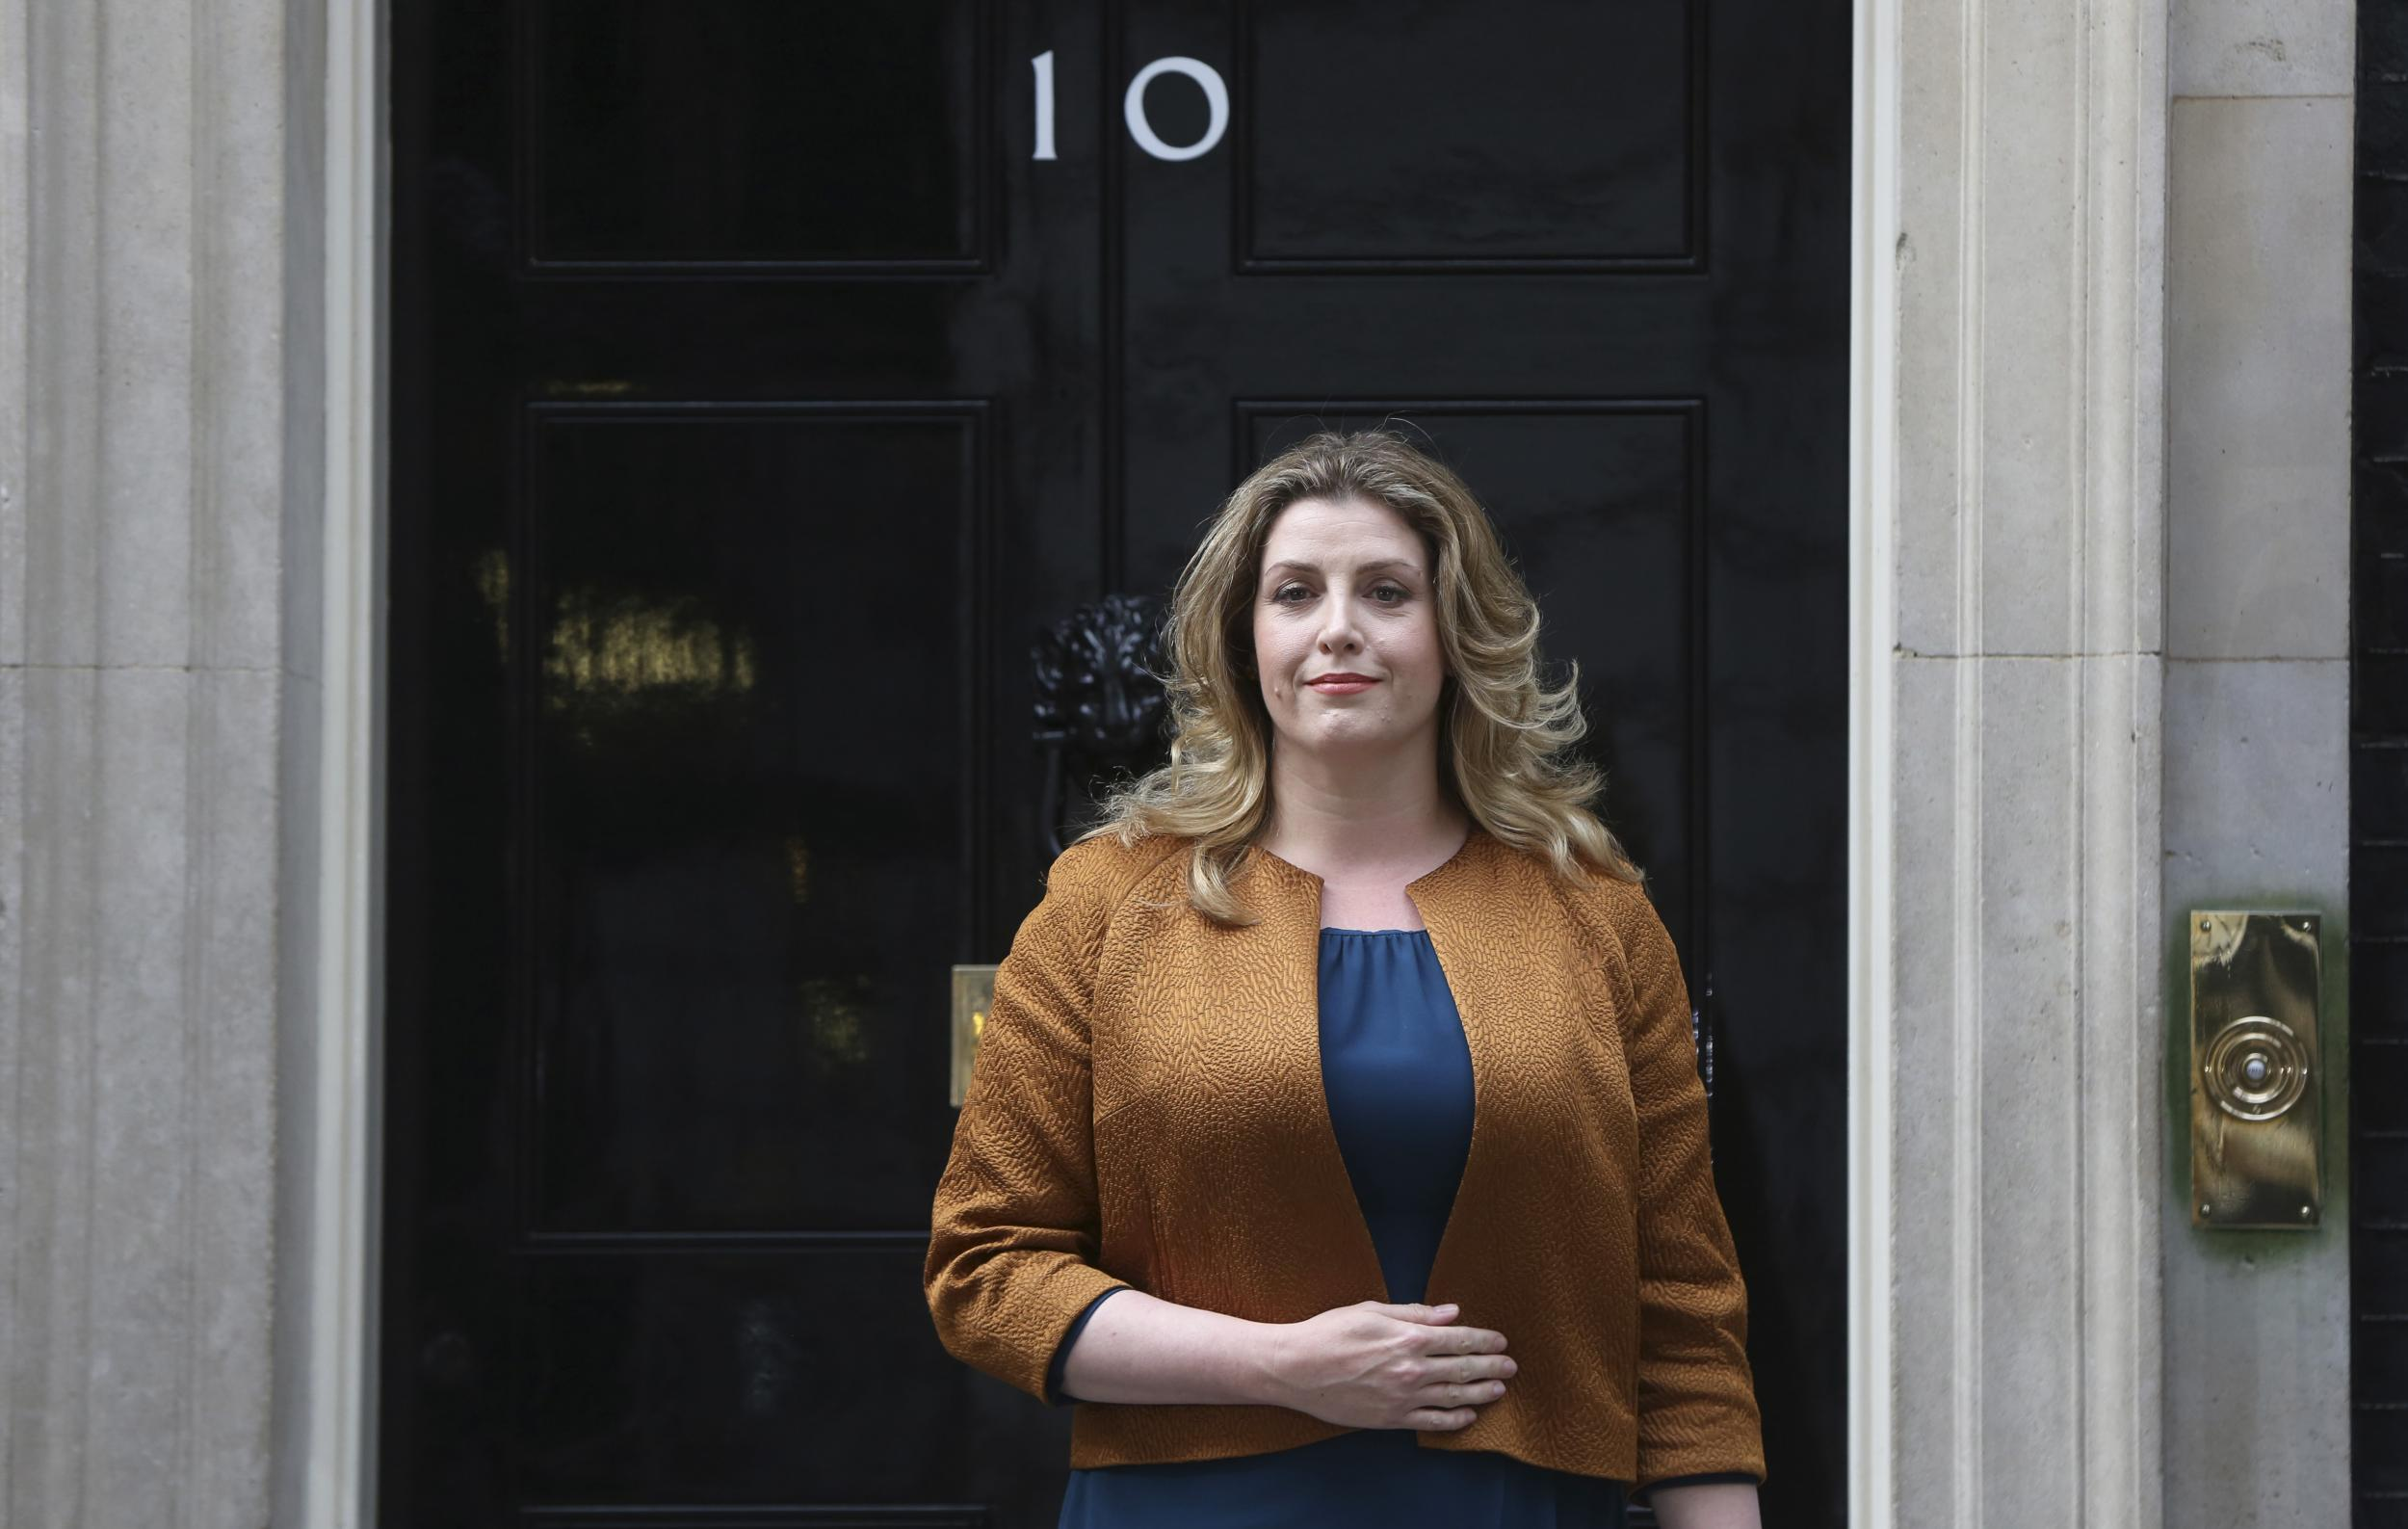 Disabilities minister quietly 'blocks PIP benefit payments to 160,000 people'